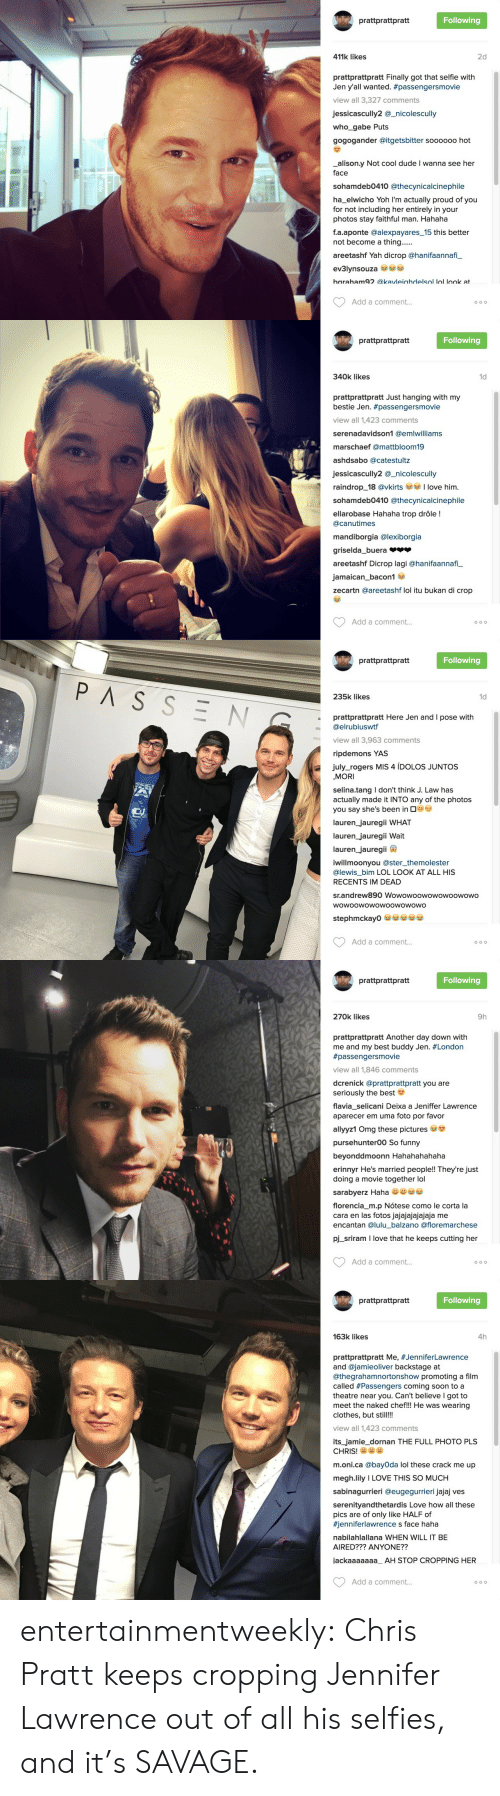 Itu: W prattprattpratt  Following  411k likes  2d  prattprattpratt Finally got that selfie with  Jen y'all wanted. #passengersmovie  view all 3,327 comments  jessicascully2 @_nicolescully  who_gabe Puts  gogogander @itgetsbitter soooo00 hot  alison.y Not cool dude I wanna see her  face  sohamdeb0410 @thecynicalcinephile  ha_elwicho Yoh I'm actually proud of you  for not including her entirely in your  photos stay faithful man. Hahaha  f.a.aponte @alexpayares_15 this better  not become a thing......  areetashf Yah dicrop @hanifaannafi_  ev3lynsouza se  baraham92 @kavleiahdelsol lol look at  Add a comment...  O o o   W prattprattpratt  Following  340k likes  1d  prattprattpratt Just hanging with my  bestie Jen. #passengersmovie  view all 1,423 comments  serenadavidson1 @emlwilliams  marschaef @mattbloom19  ashdsabo @catestultz  jessicascully2 @_nicolescully  love him  raindrop_18 @vkirts  sohamdeb0410 @thecynicalcinephile  ellarobase Hahaha trop drôle !  @canutimes  mandiborgia @lexiborgia  griselda_buera  areetashf Dicrop lagi @hanifaannafi  jamaican_bacon1  zecartn @areetashf lol itu bukan di crop  Add a comment...  O o o   prattprattpratt  Following  PASSEN  235k likes  1d  prattprattpratt Here Jen and I pose with  @elrubiuswtf  view all 3,963 comments  ripdemons YAS  july_rogers MIS 4 ÍDOLOS JUNTOS  MORI  selina.tang I don't think J. Law has  actually made it INTO any of the photos  you say she's been in G  lauren_jauregii WHAT  lauren_jauregii Wait  lauren_jauregii  iwillmoonyou @ster_themolester  @lewis_bim LOL LOOK AT ALL HIS  RECENTS IM DEAD  sr.andrew890 Wowowoowowowoowowo  wowoowowowoowowowo  stephmckay0  Add a comment...  O o O   prattprattpratt  Following  270k likes  9h  prattprattpratt Another day down with  me and my best buddy Jen. #London  #passengersmovie  view all 1,846 comments  dcrenick @prattprattpratt you are  seriously the best  flavia_selicani Deixa a Jeniffer Lawrence  aparecer em uma foto por favor  allyyz1 Omg these pictures  pursehunter00 